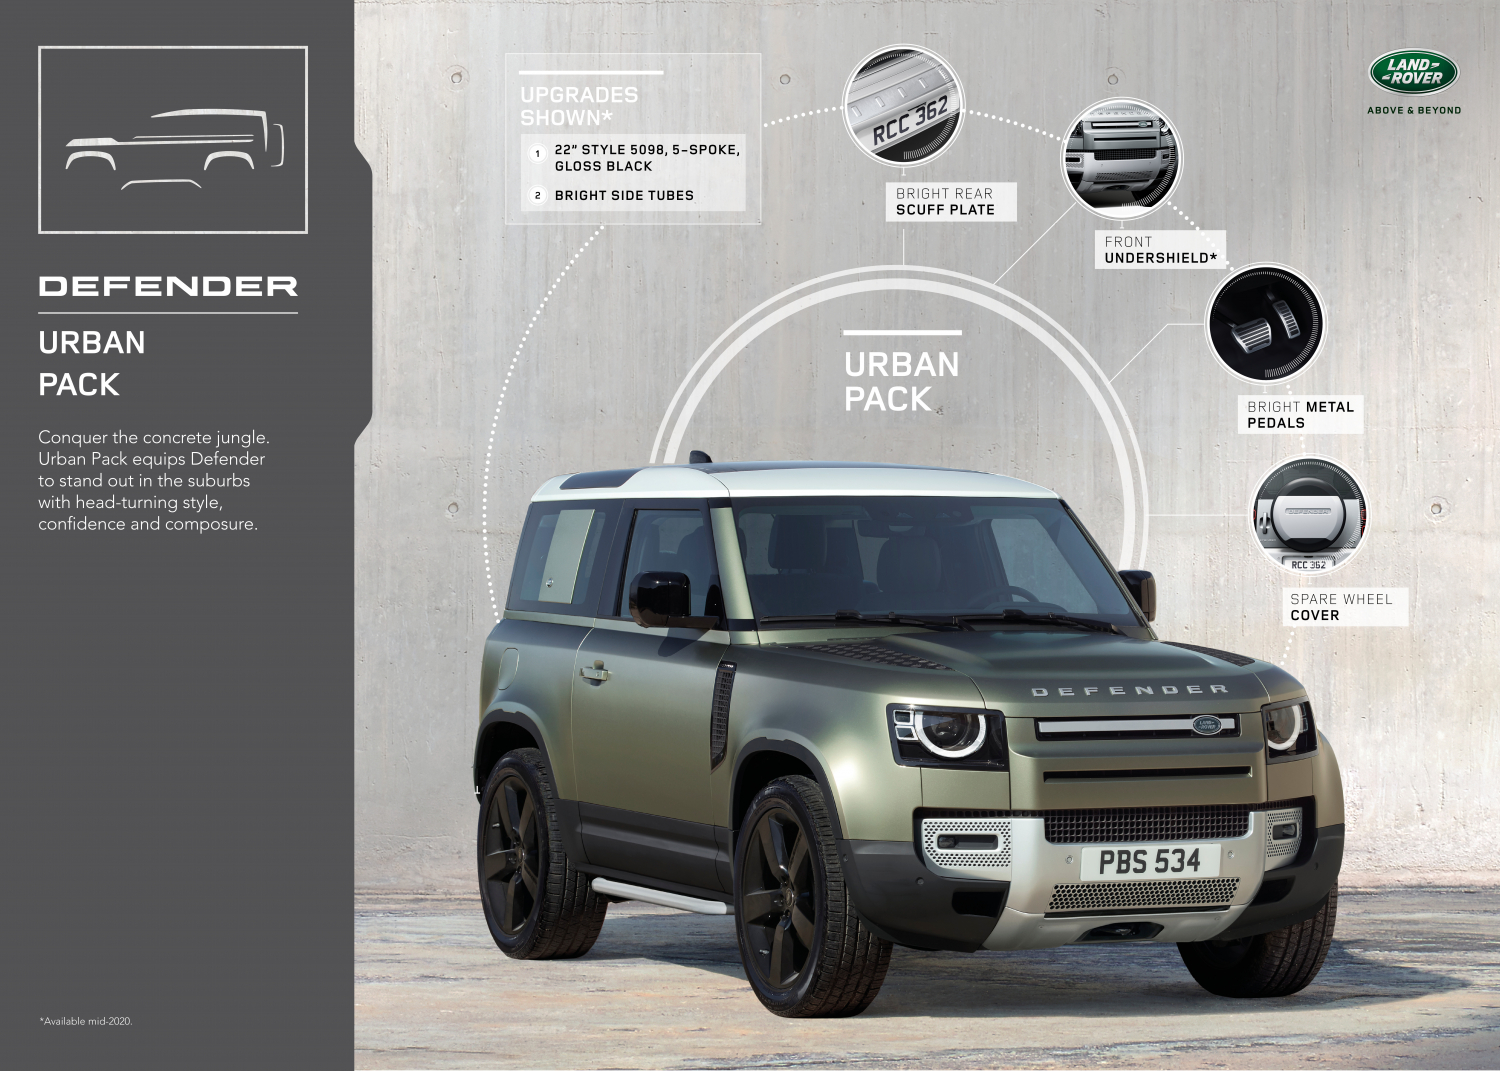 URBAN PACK - THE NEW DEFENDER